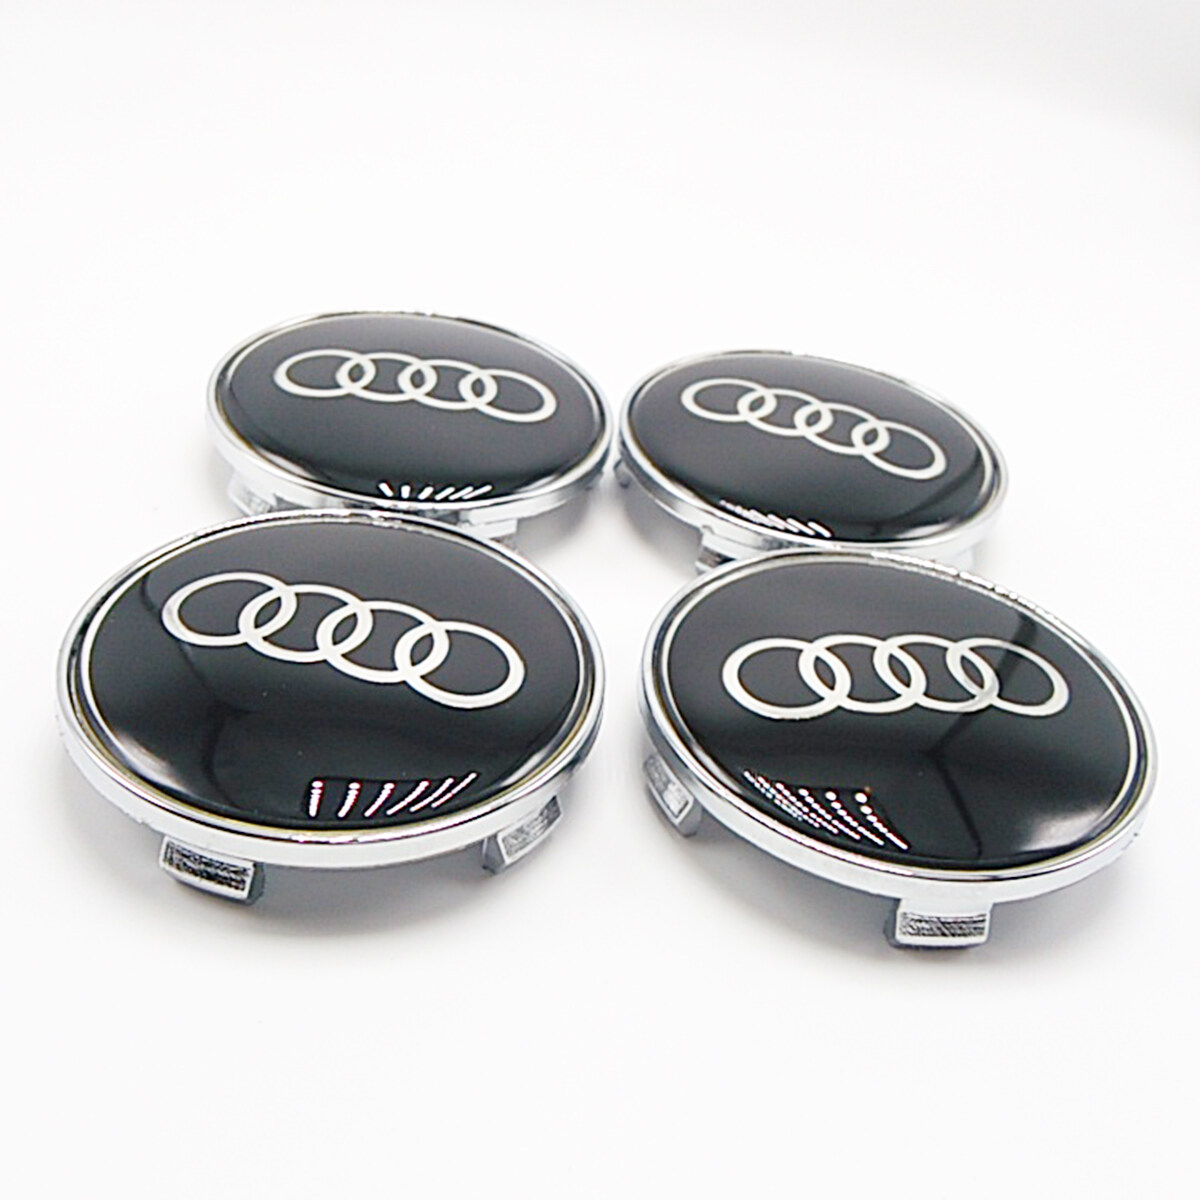 Mm Car Emblem Badge Sticker Wheel Centre Caps Cover - Audi car emblem